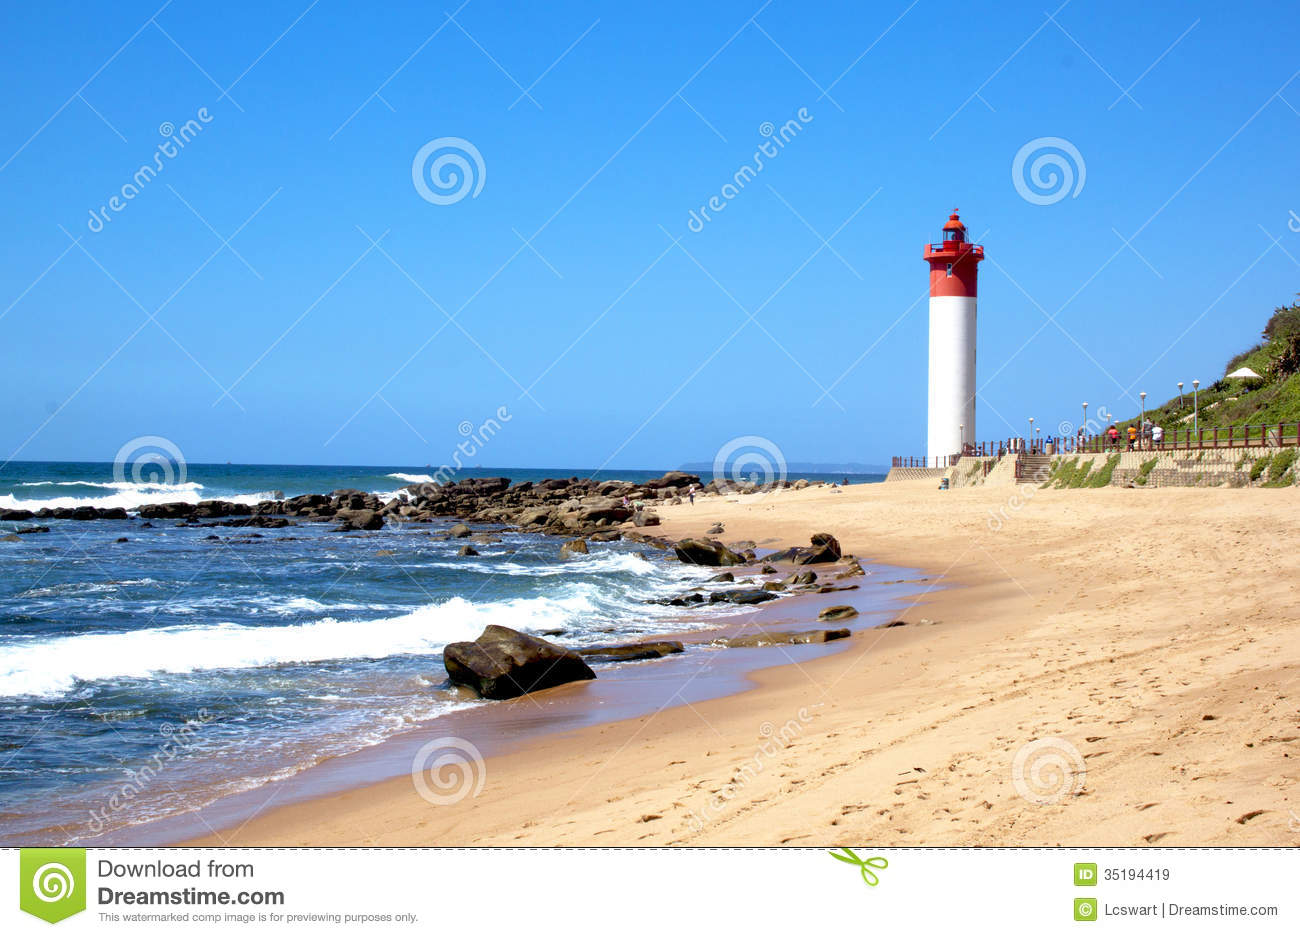 coastal seascape with red and white lighthouse royalty beach sand background clipart beach sand background clipart